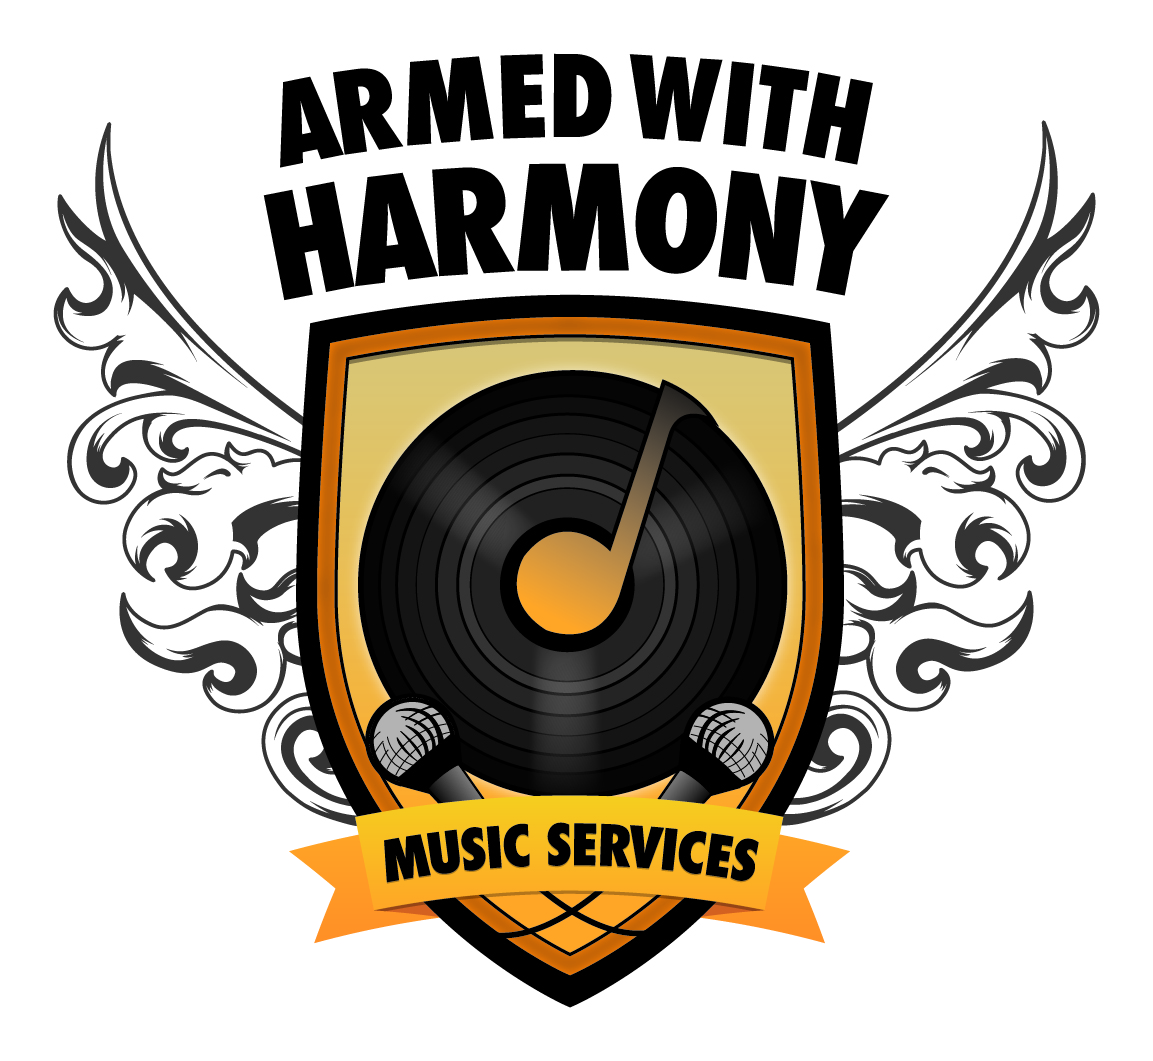 Armed With Harmony